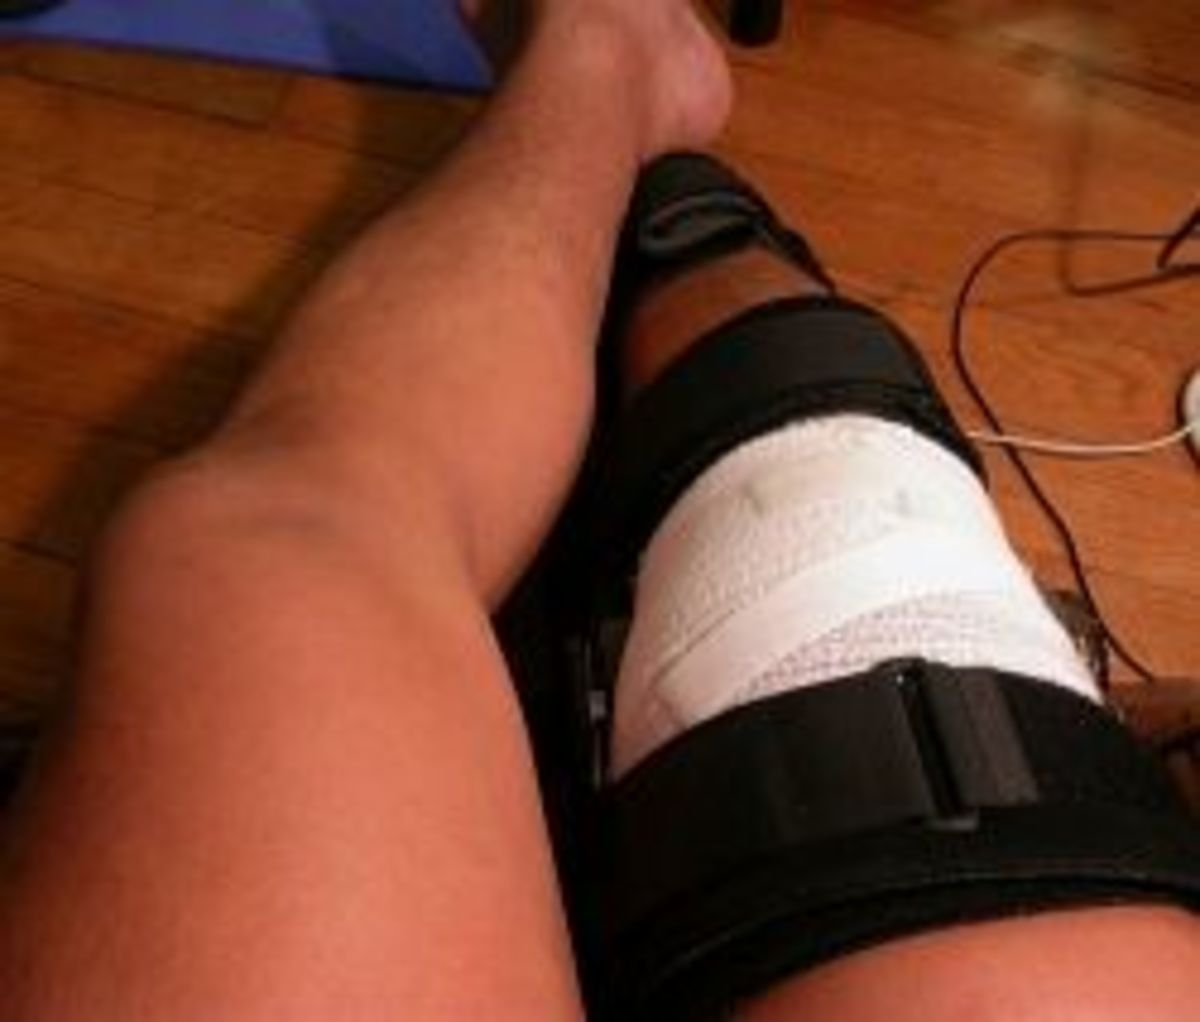 Injured Knee